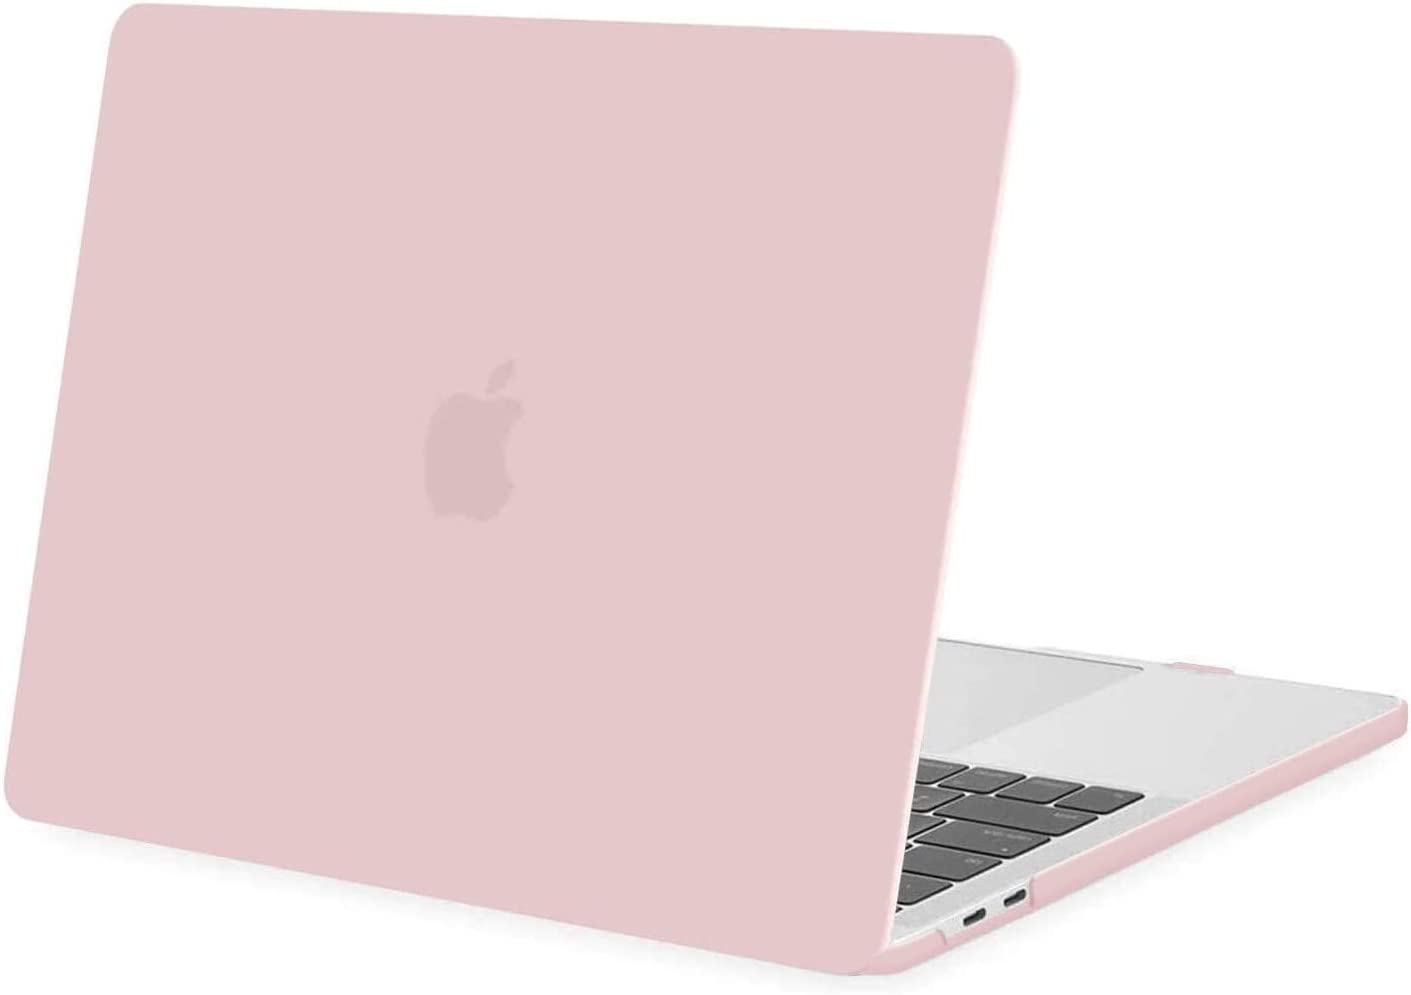 MOSISO MacBook Pro 13 inch Case 2020 2019 2018 2017 2016 Release A2289 A2251 A2159 A1989 A1706 A1708, Plastic Hard Shell Case Compatible with MacBook Pro 13 inch with/Without Touch Bar, Rose Quartz